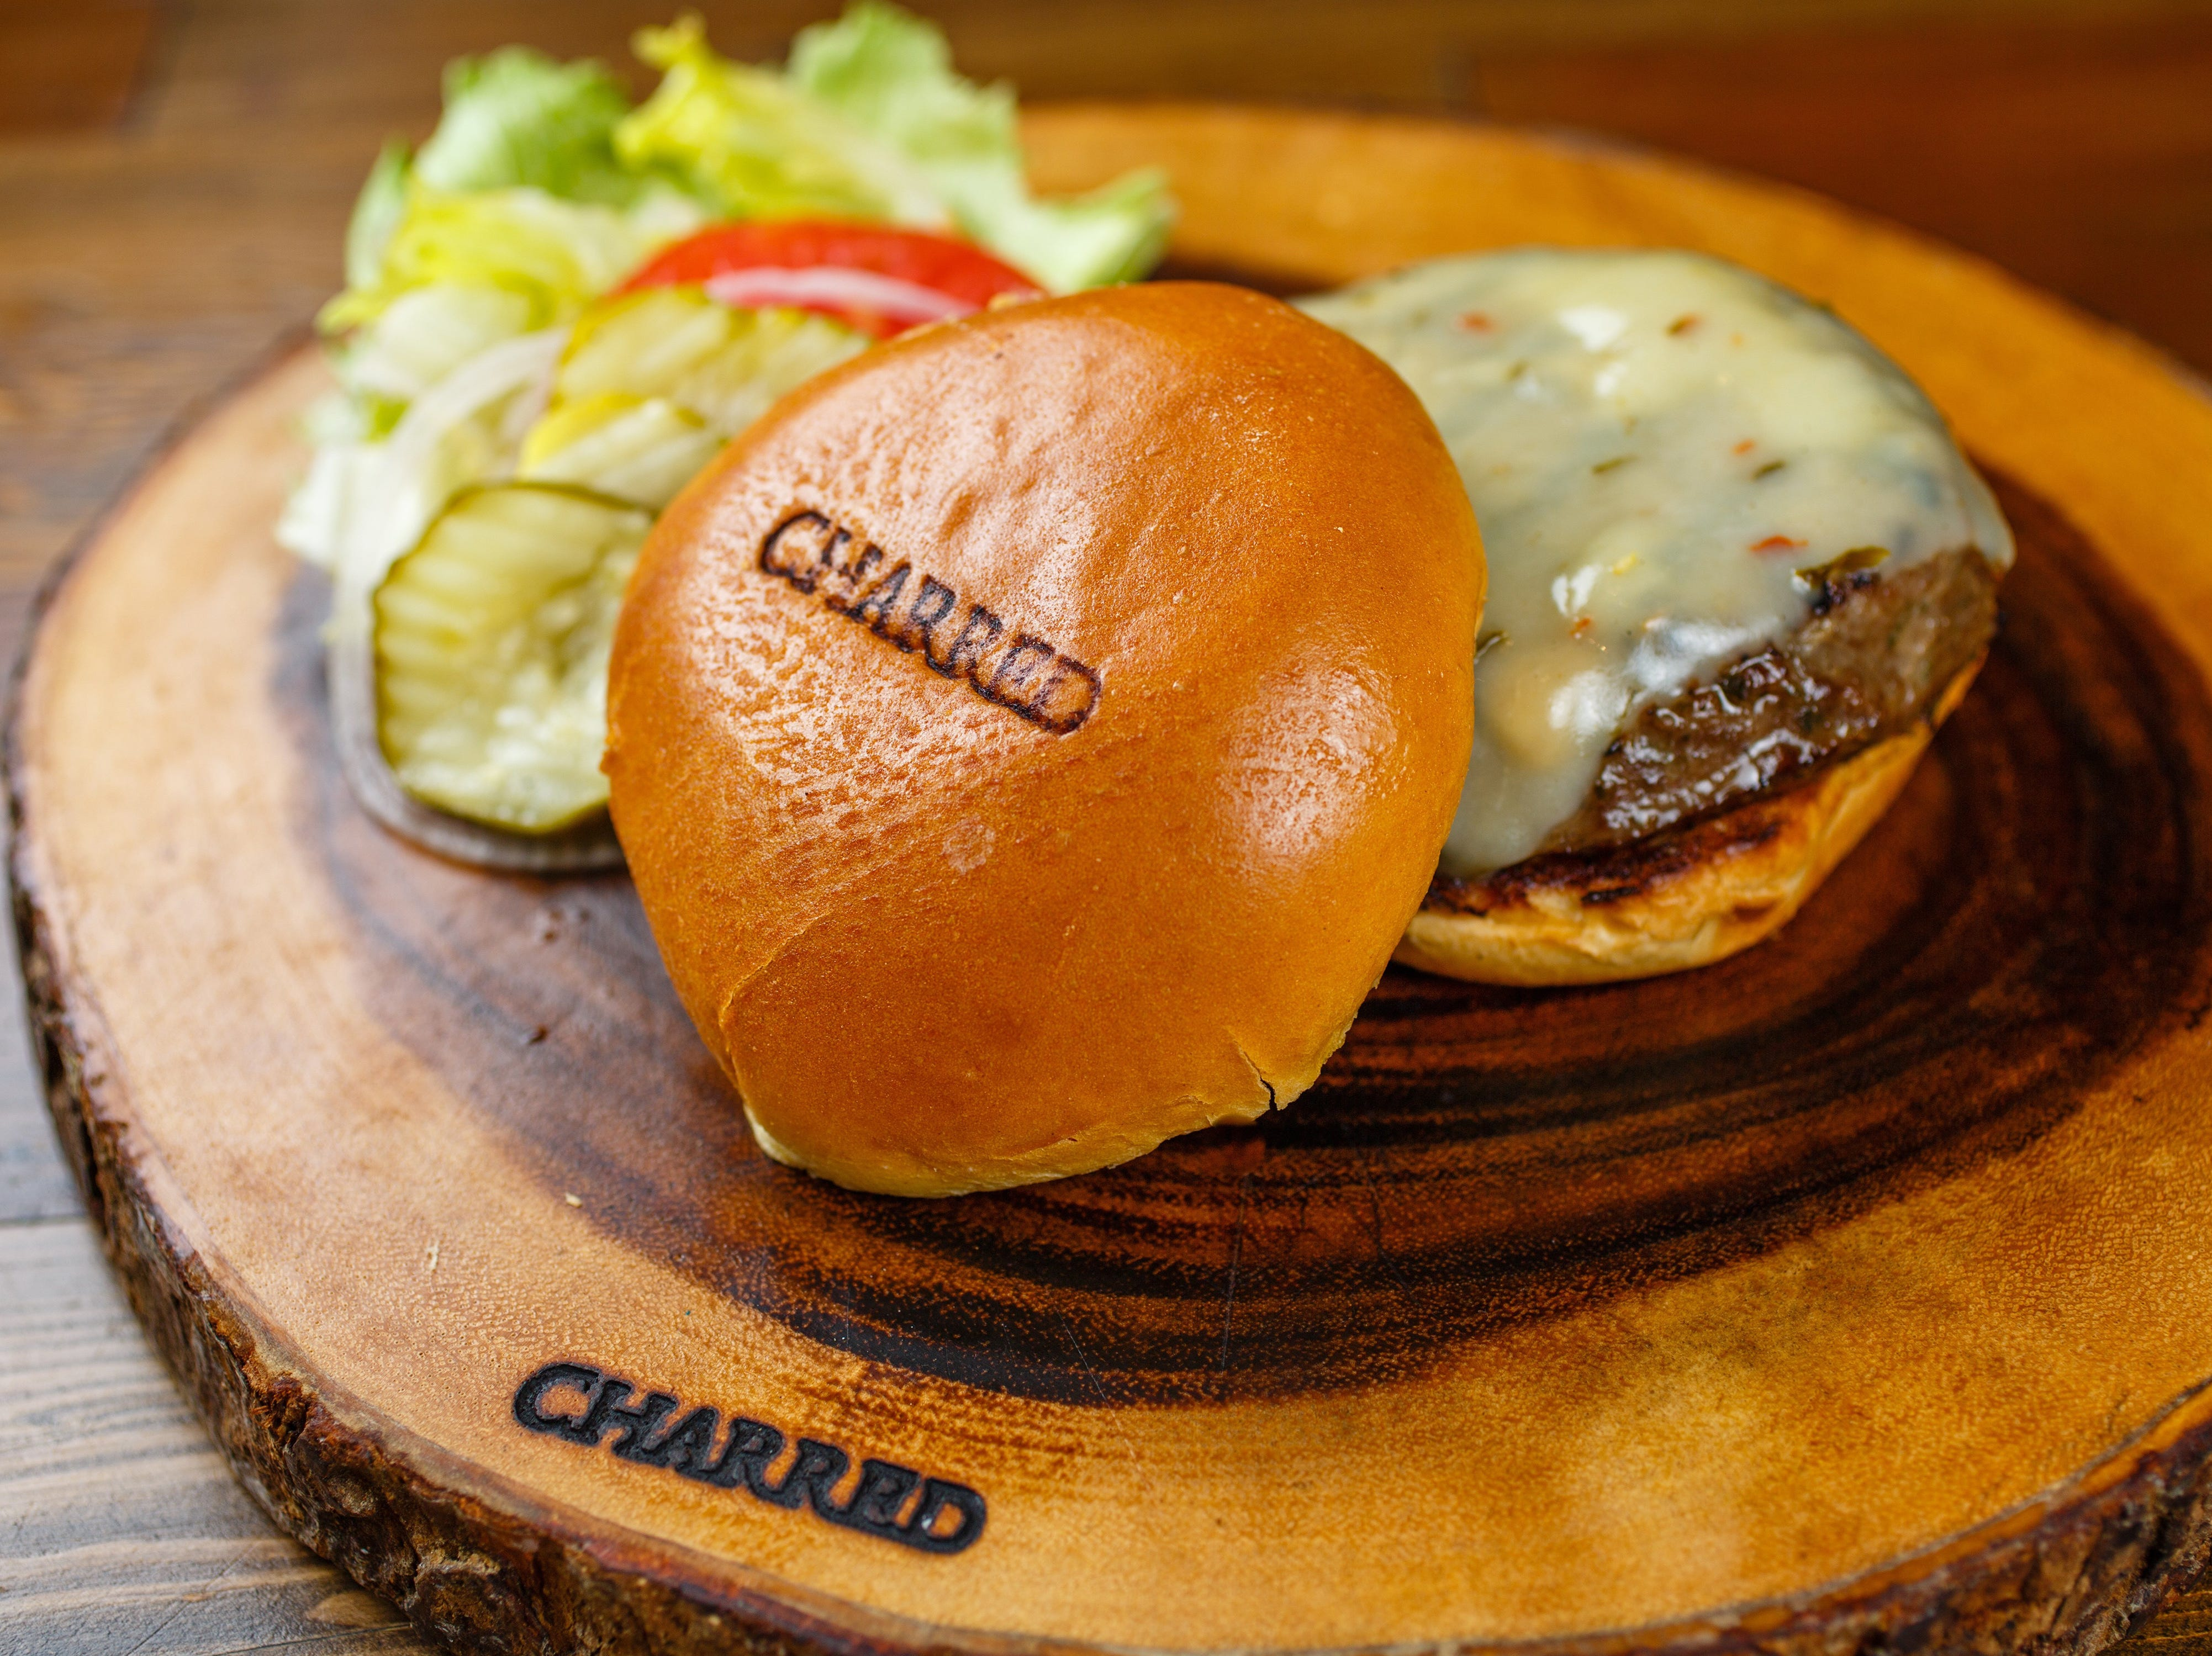 Wagyu Jalapeno Burger for lunch at Jimmy P's Charred.